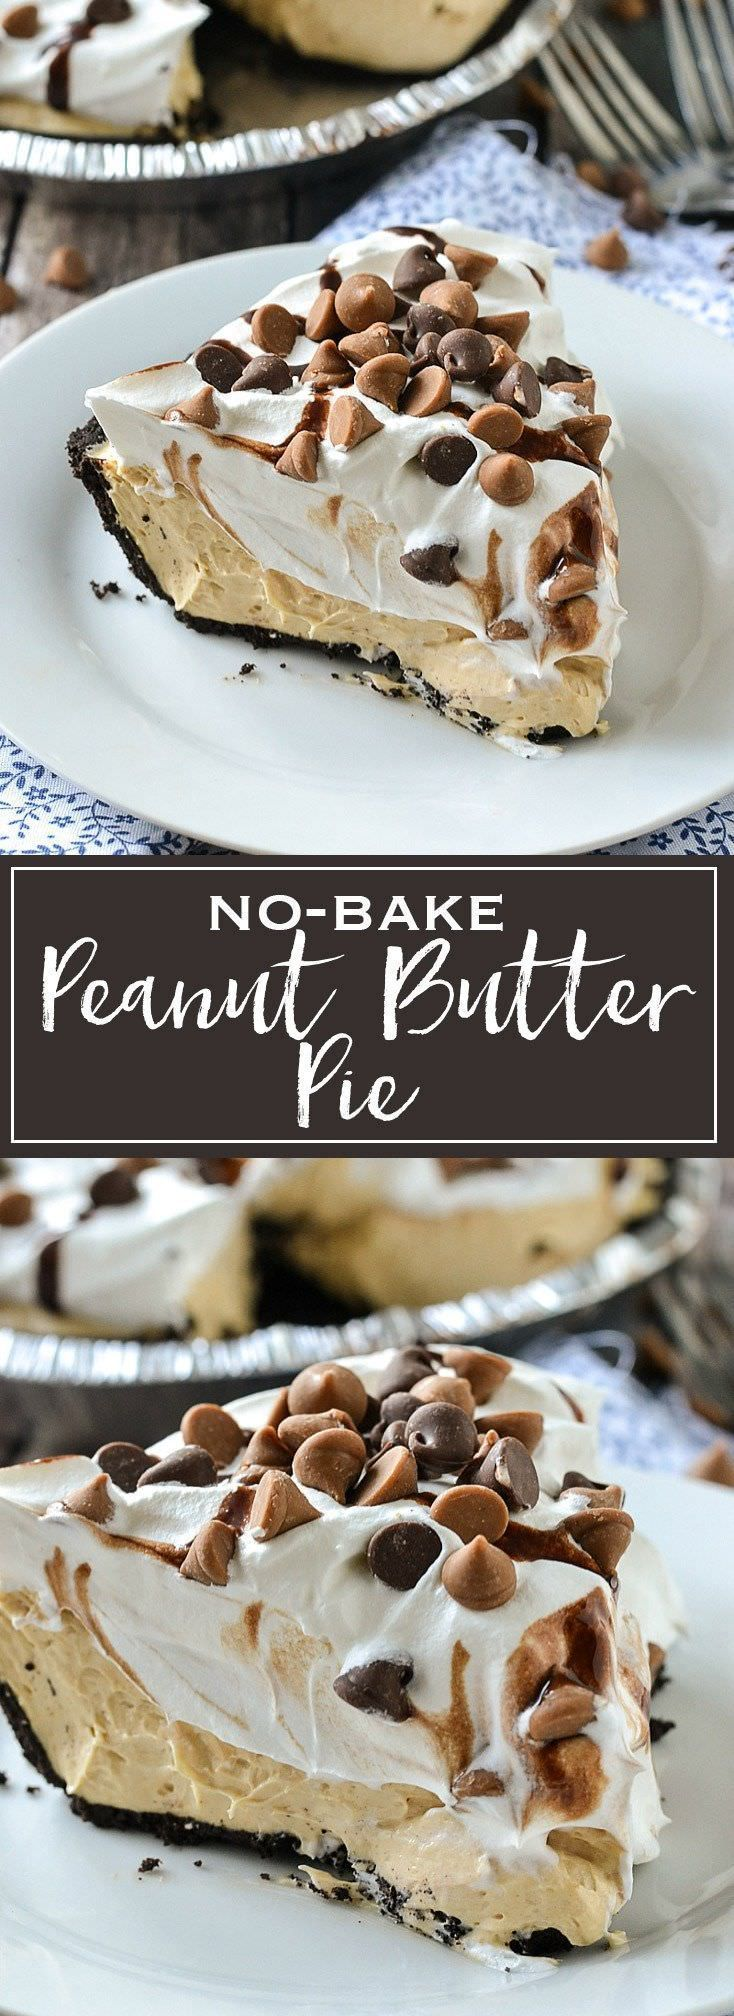 A simple recipe for creamy and delicious No-Bake Peanut Butter Pie. It only takes minutes to make with just a few ingredients. It's simply delicious. (No Bake Chocolate Desserts)